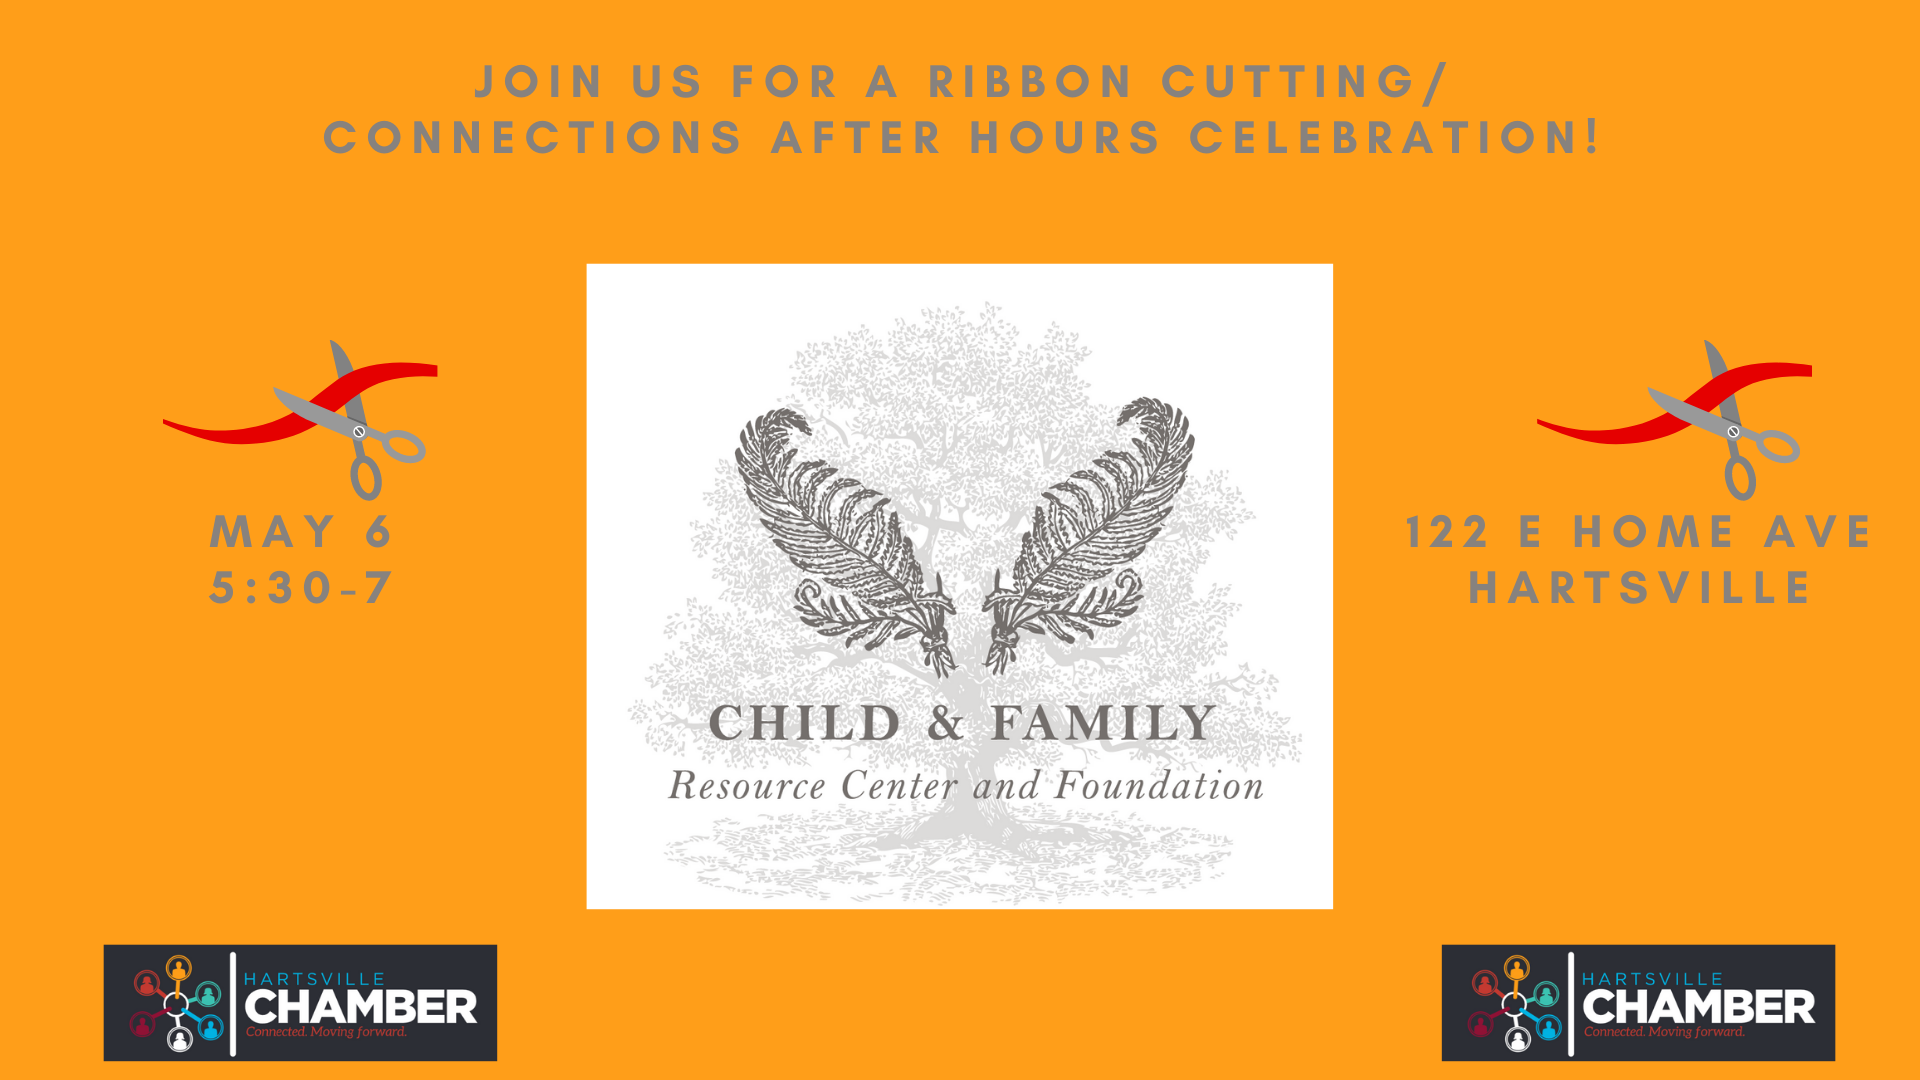 Join-us-for-a-ribbon-cutting_-Connections-after-hours-celebration.-(1)-copy.png